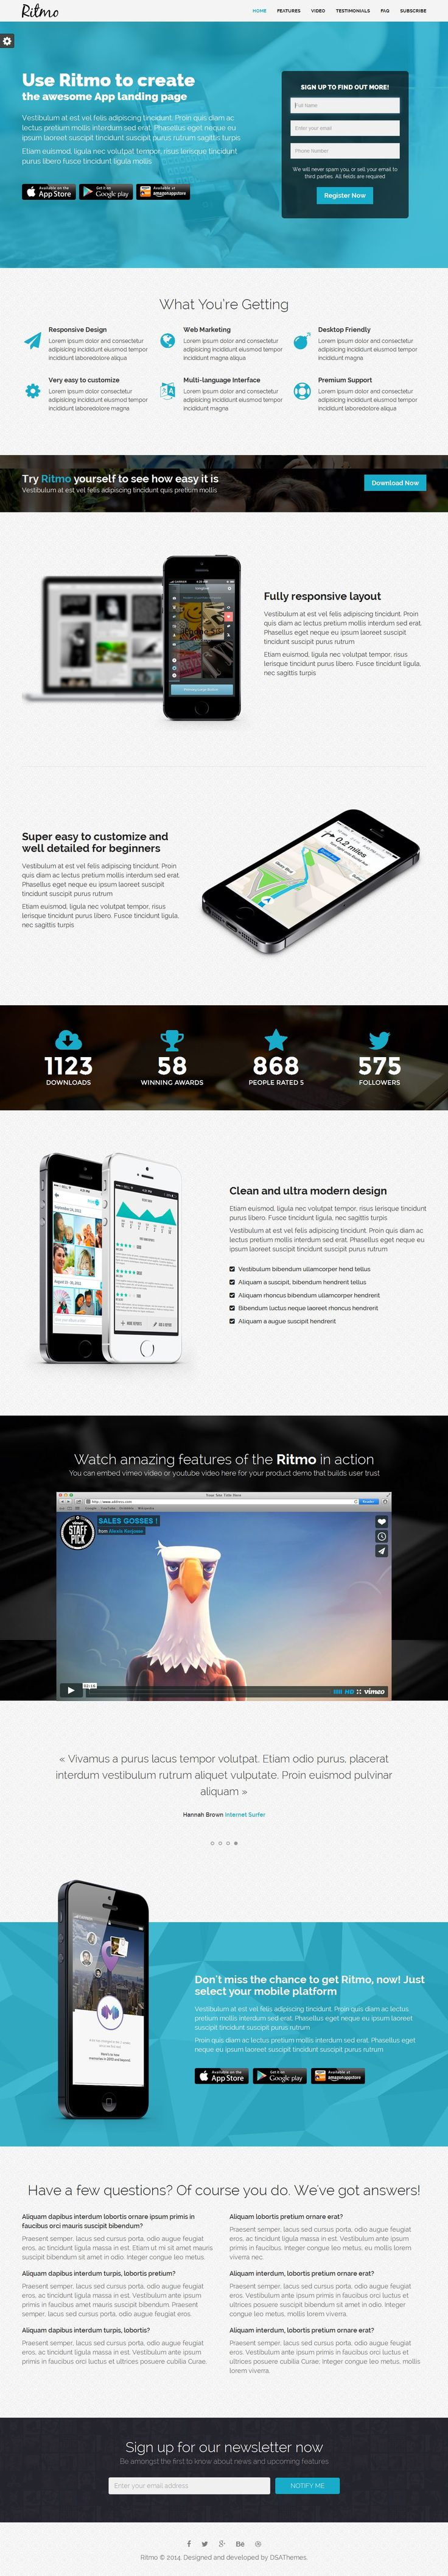 Ritmo - Mobile App Landing Page HTML5 Template | Buy and Download: http://themeforest.net/item/ritmo-mobile-app-landing-page-html5-template/8257395?WT.ac=category_thumb&WT.z_author=DSA79&ref=ksioks